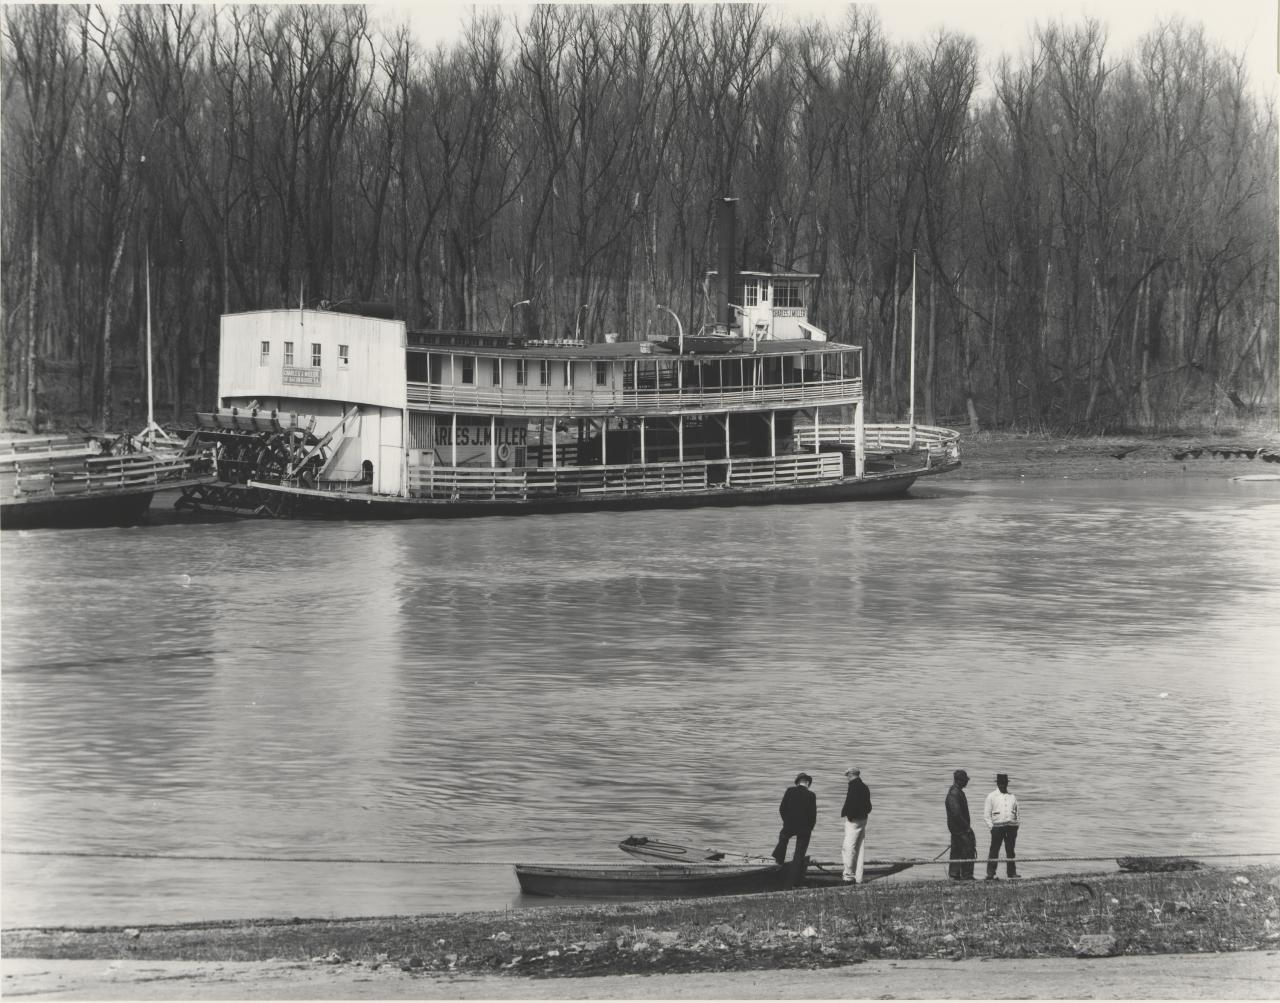 Rivermen and ferry, Vicksburg, Mississippi